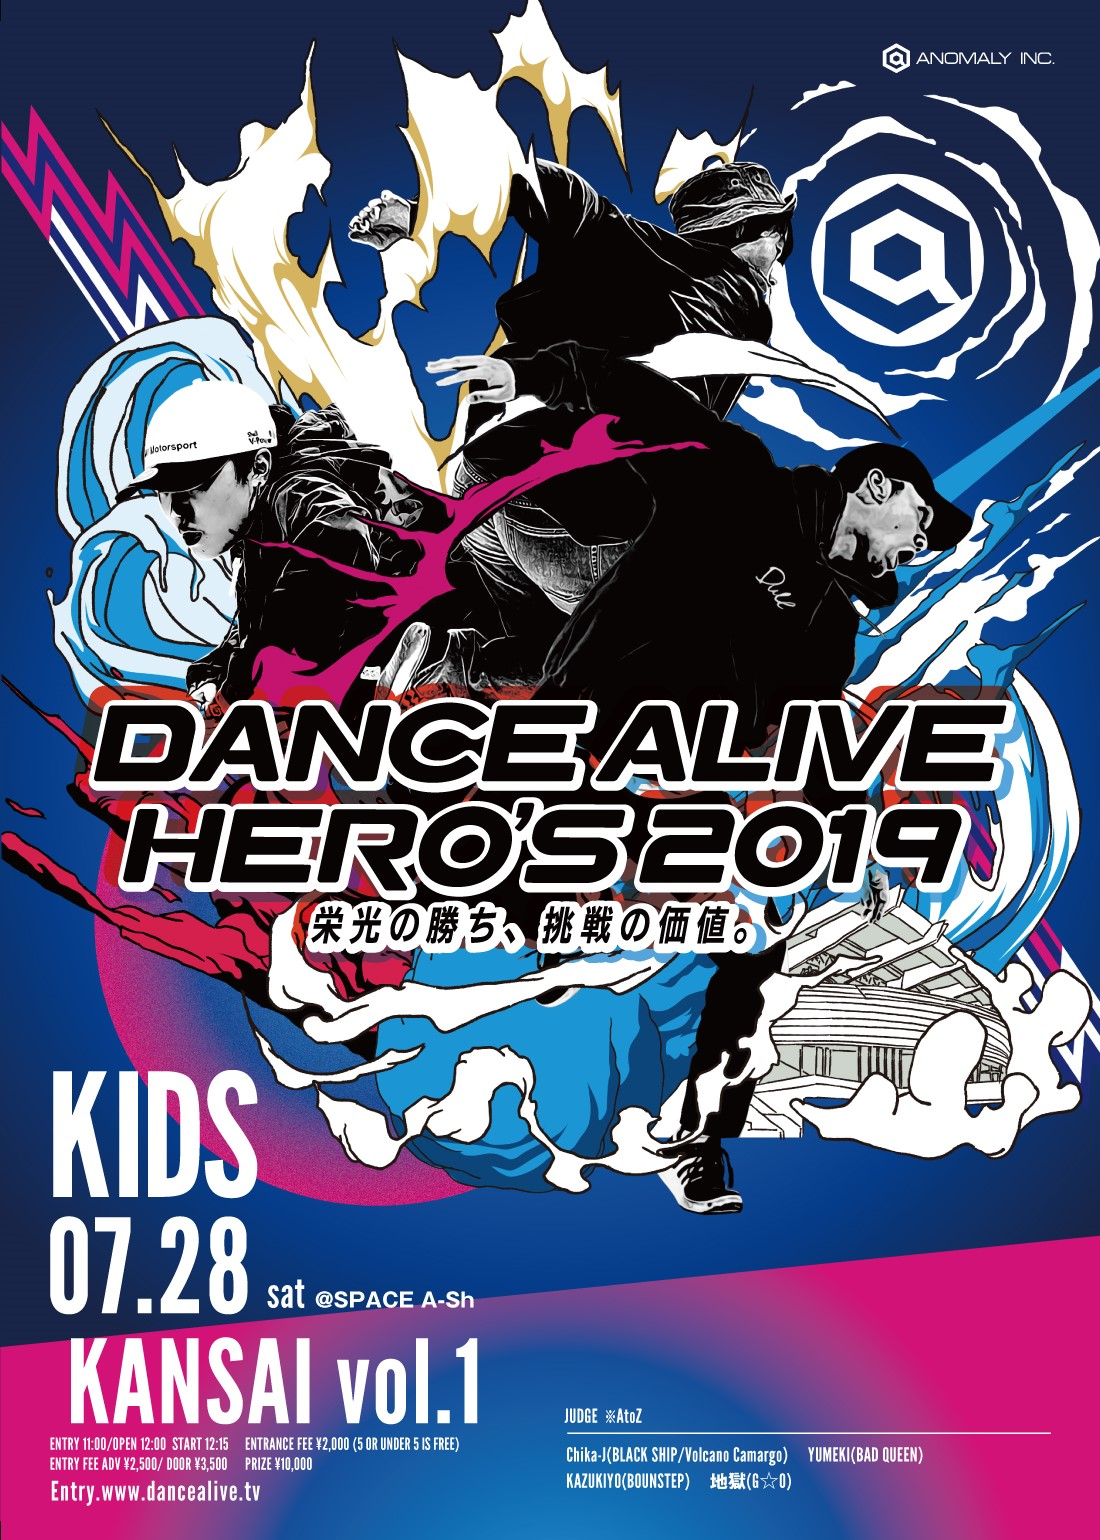 DANCE ALIVE HERO'S KIDS KANSAI VOL.1